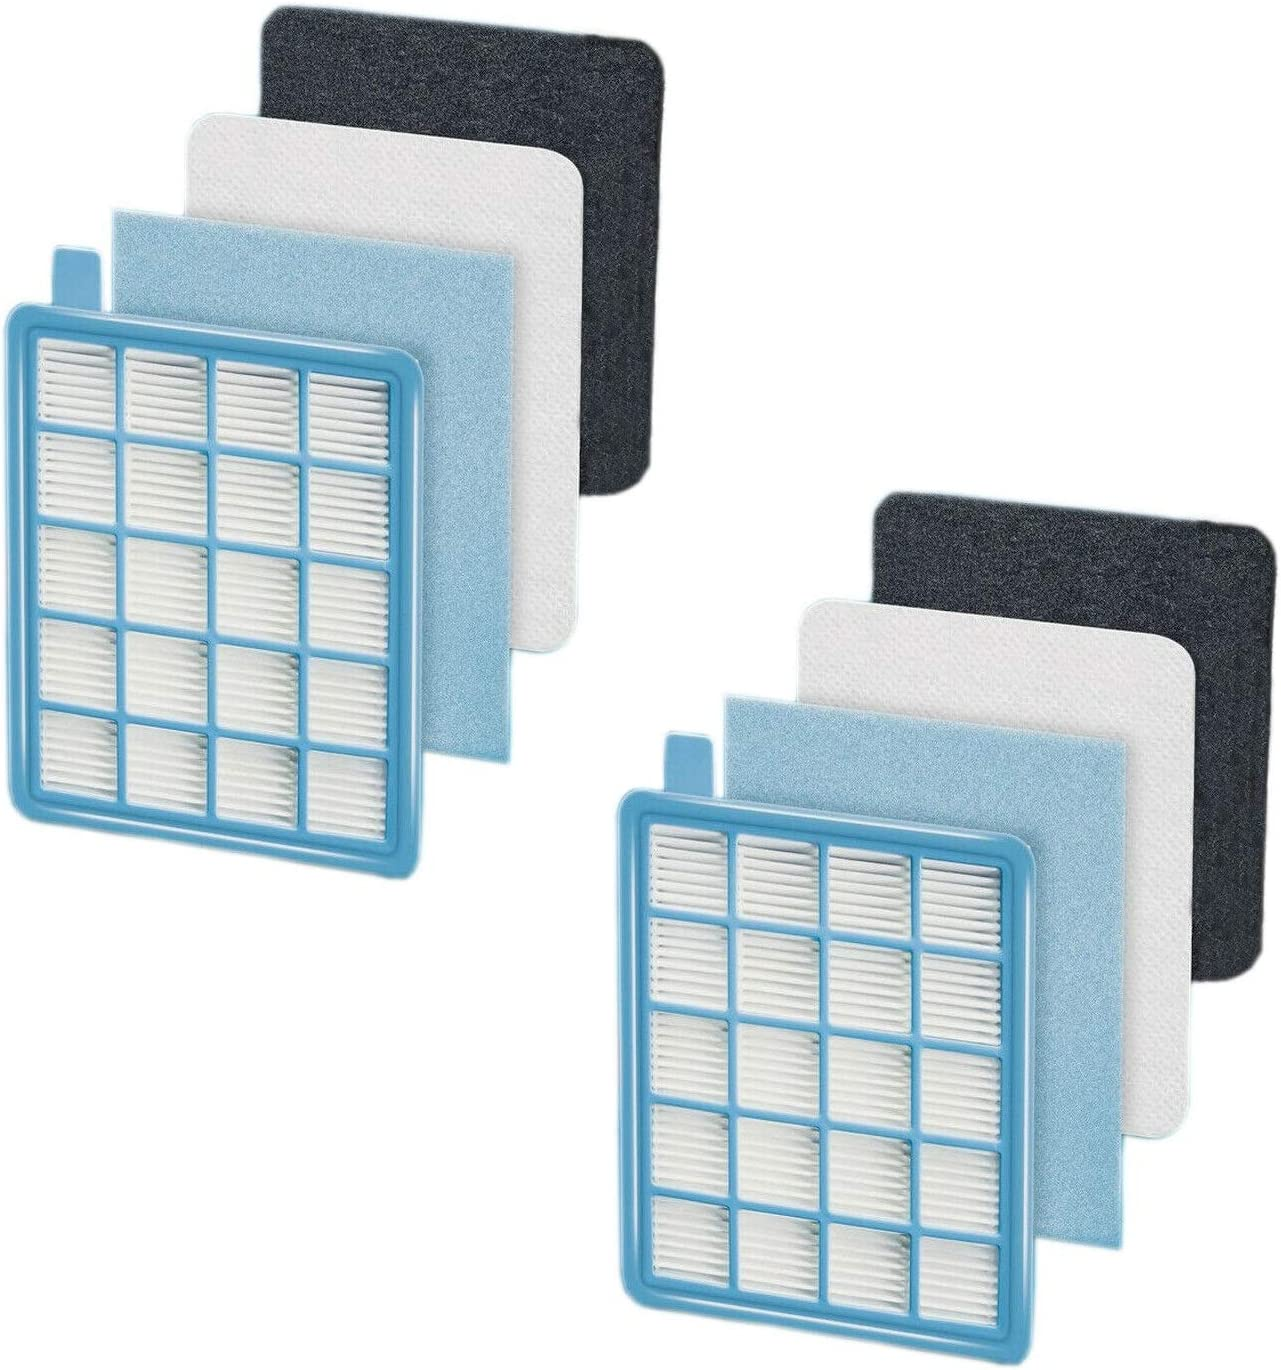 Wessper 2 Pack Replacement Filter Kit for Philips PowerPro Active and Compact Series Vacuum Cleaners replacement FC8058//01